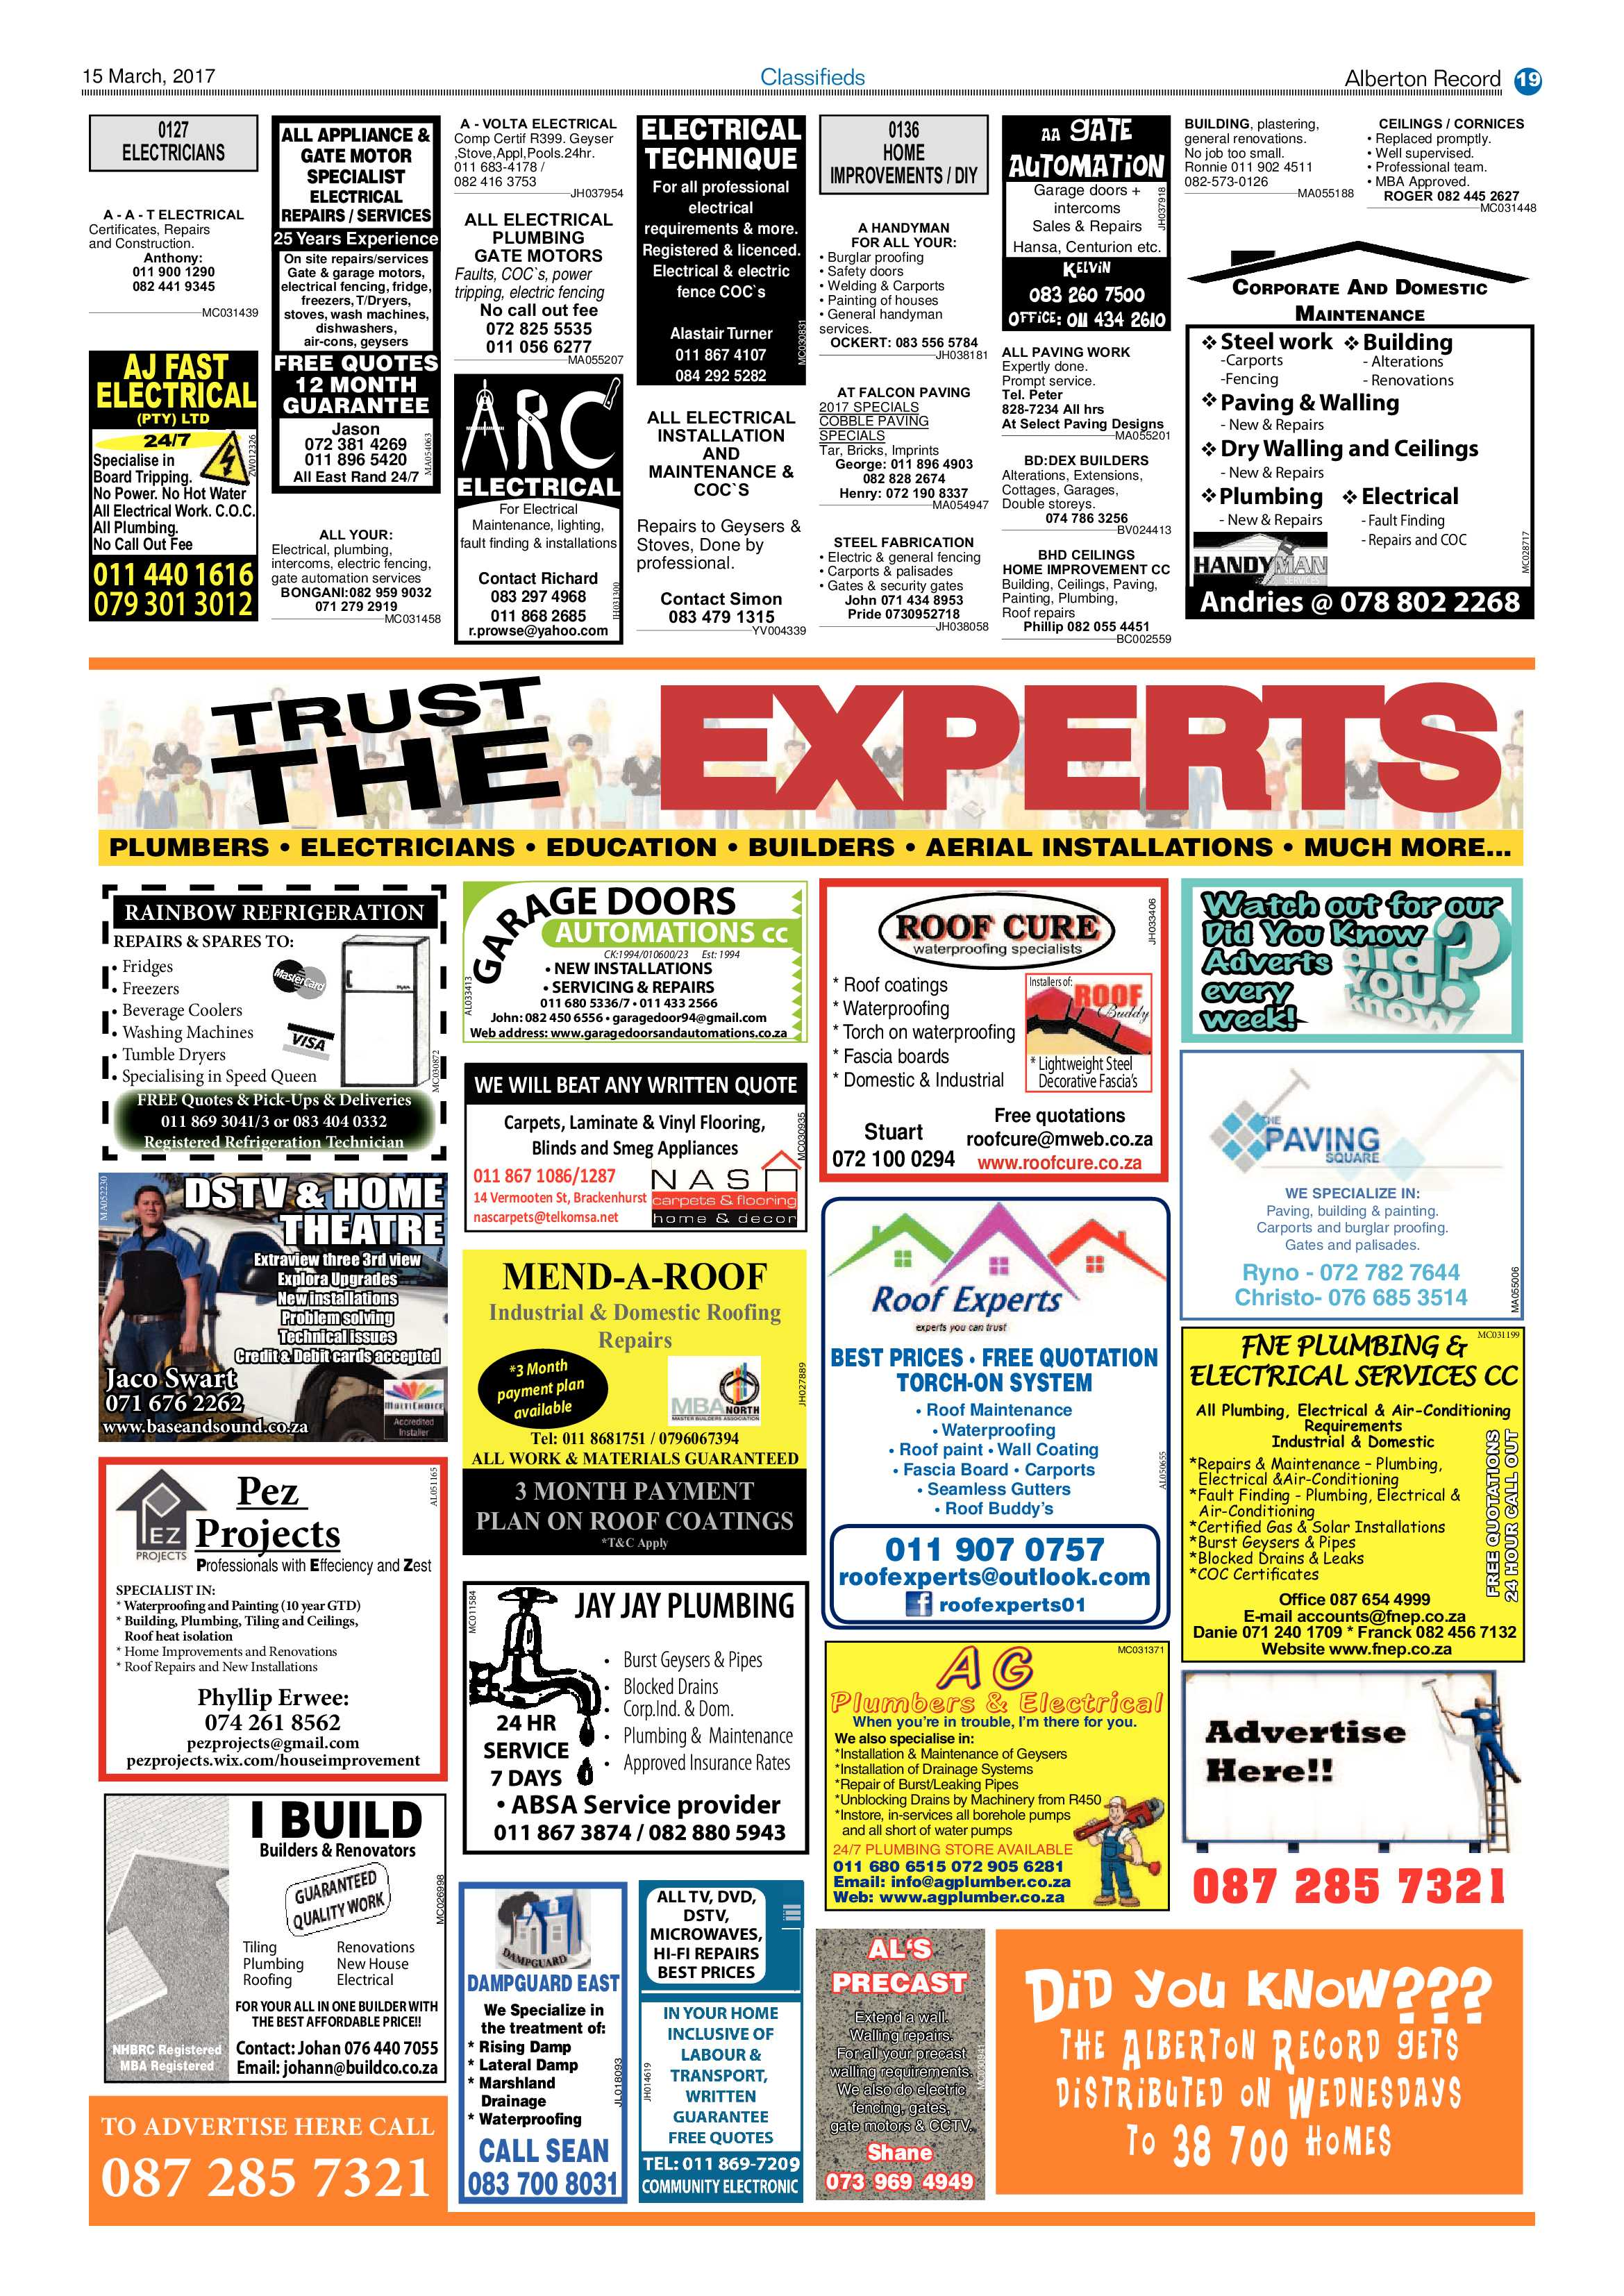 alberton-record-15-march-2017-epapers-page-19